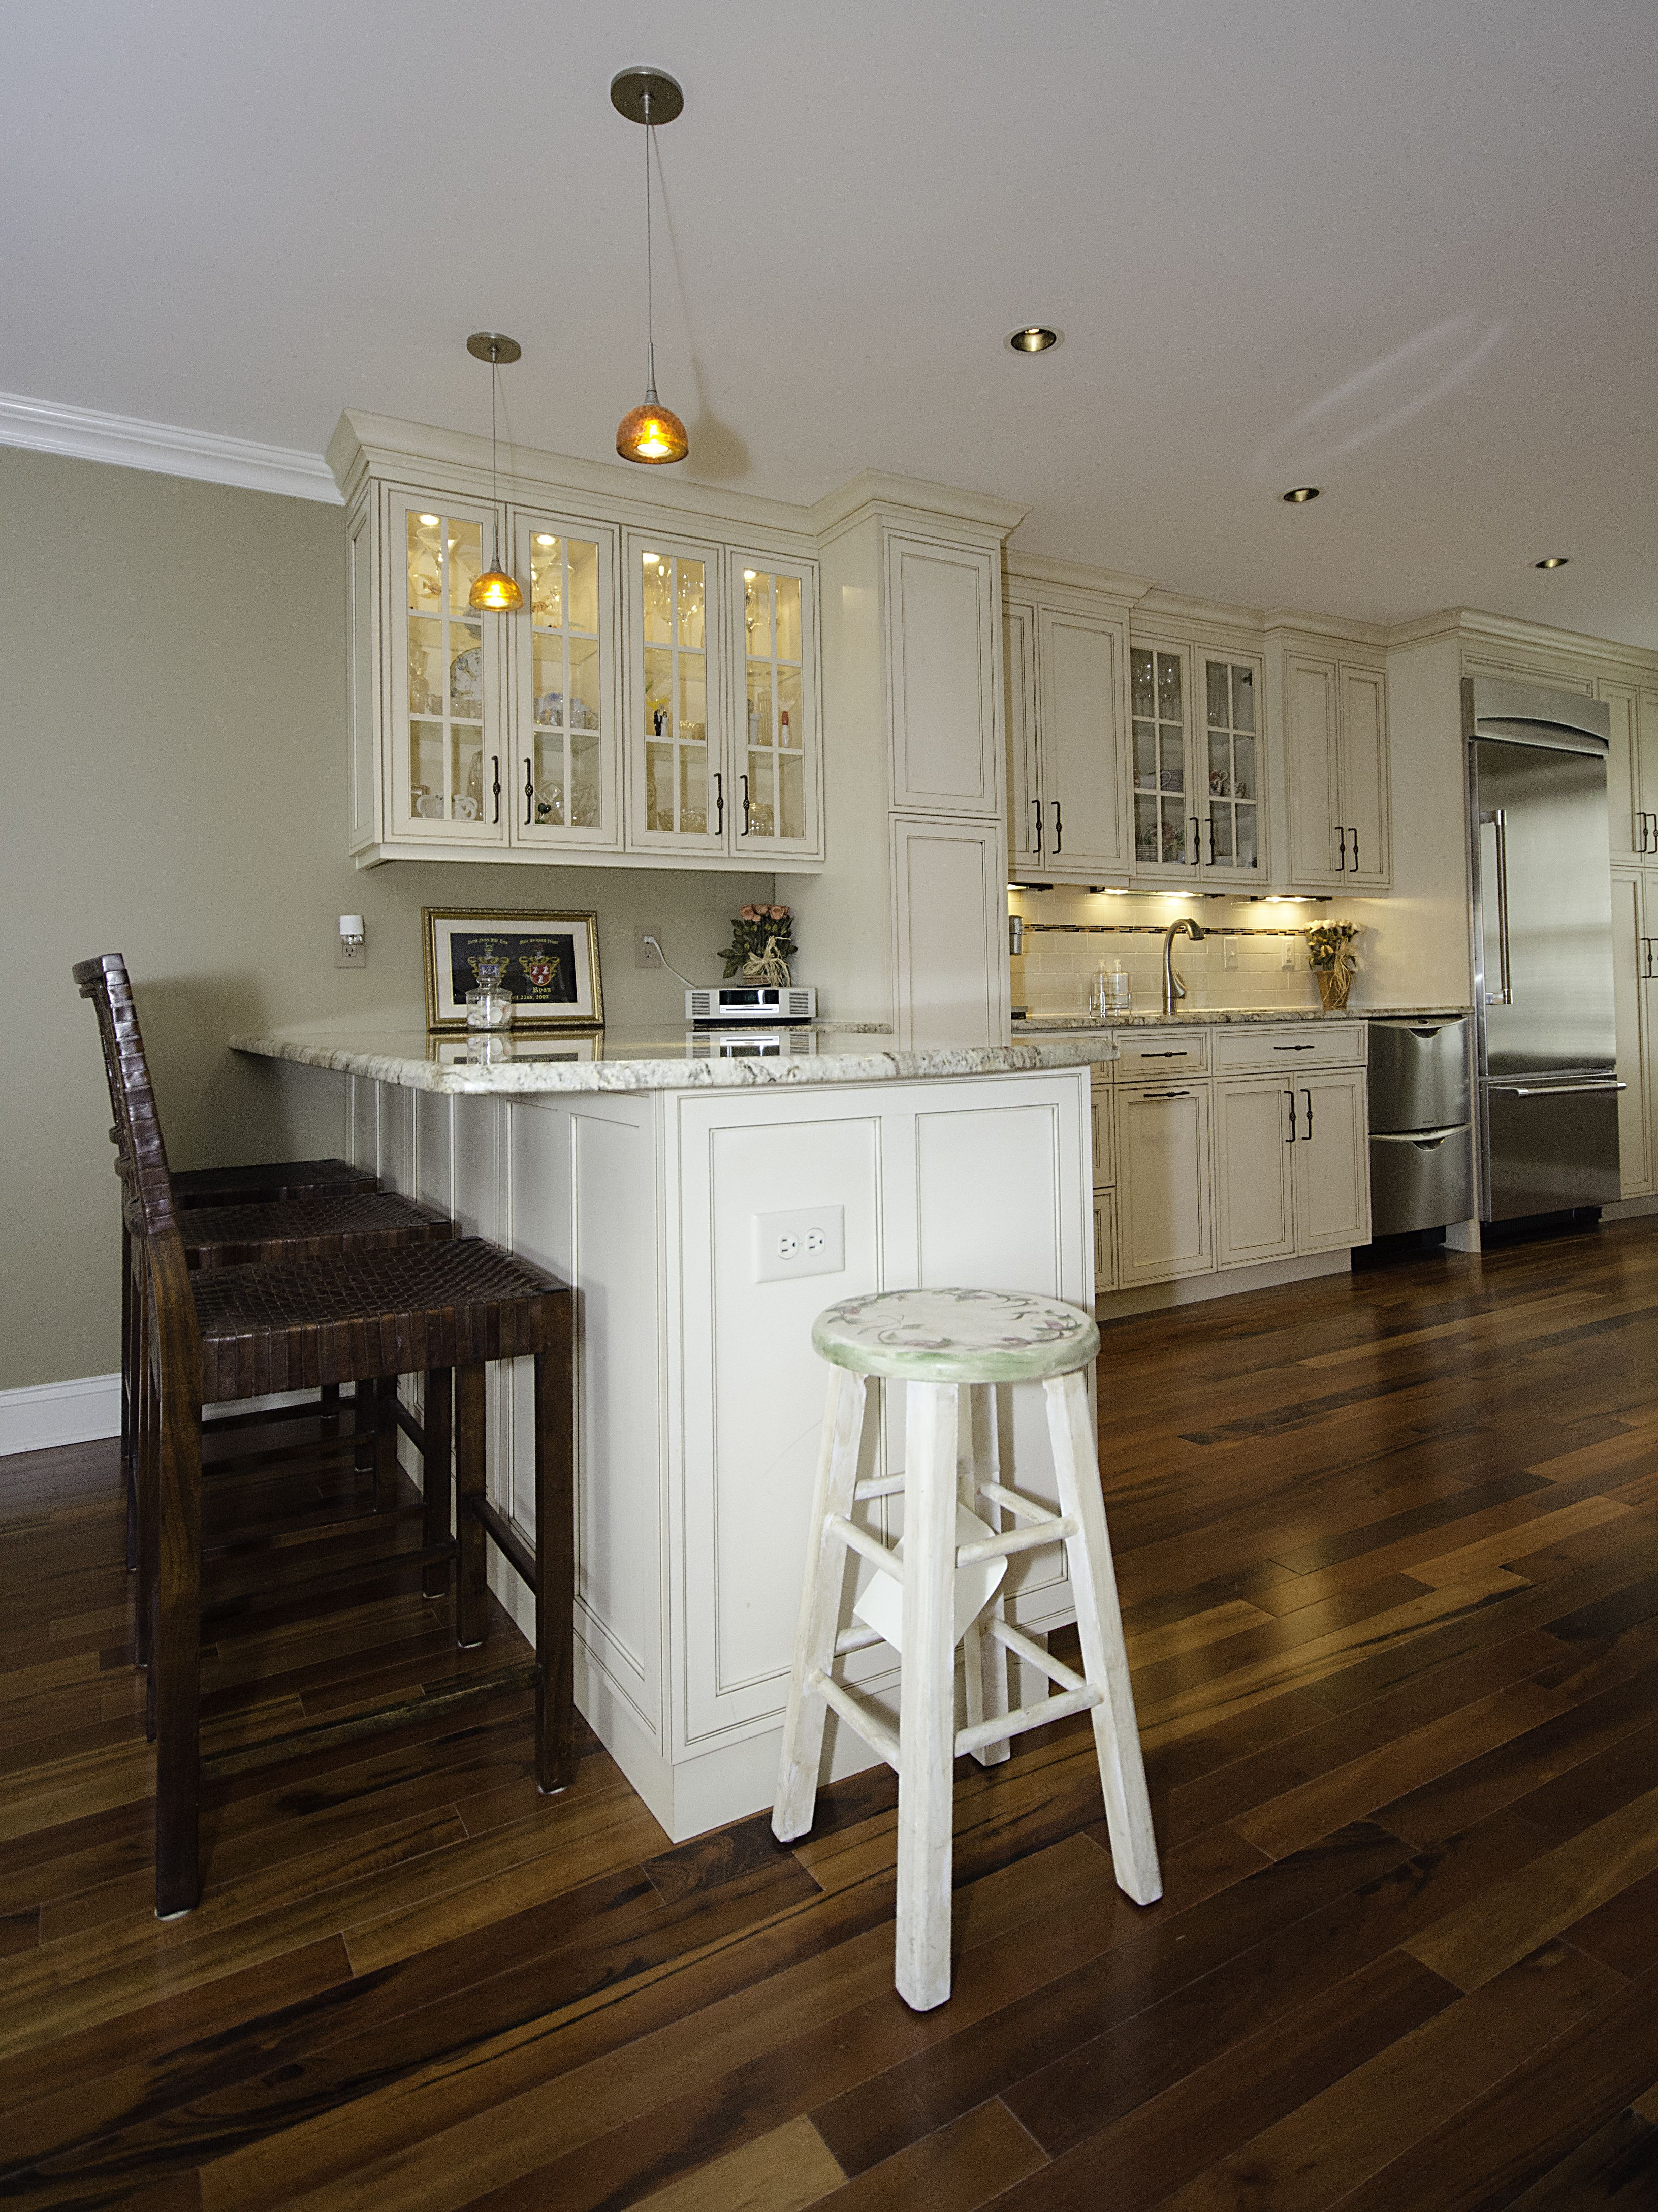 Galley Kitchen With Peninsula Neptune Njdesign Line Kitchens Stunning Design Line Kitchens Inspiration